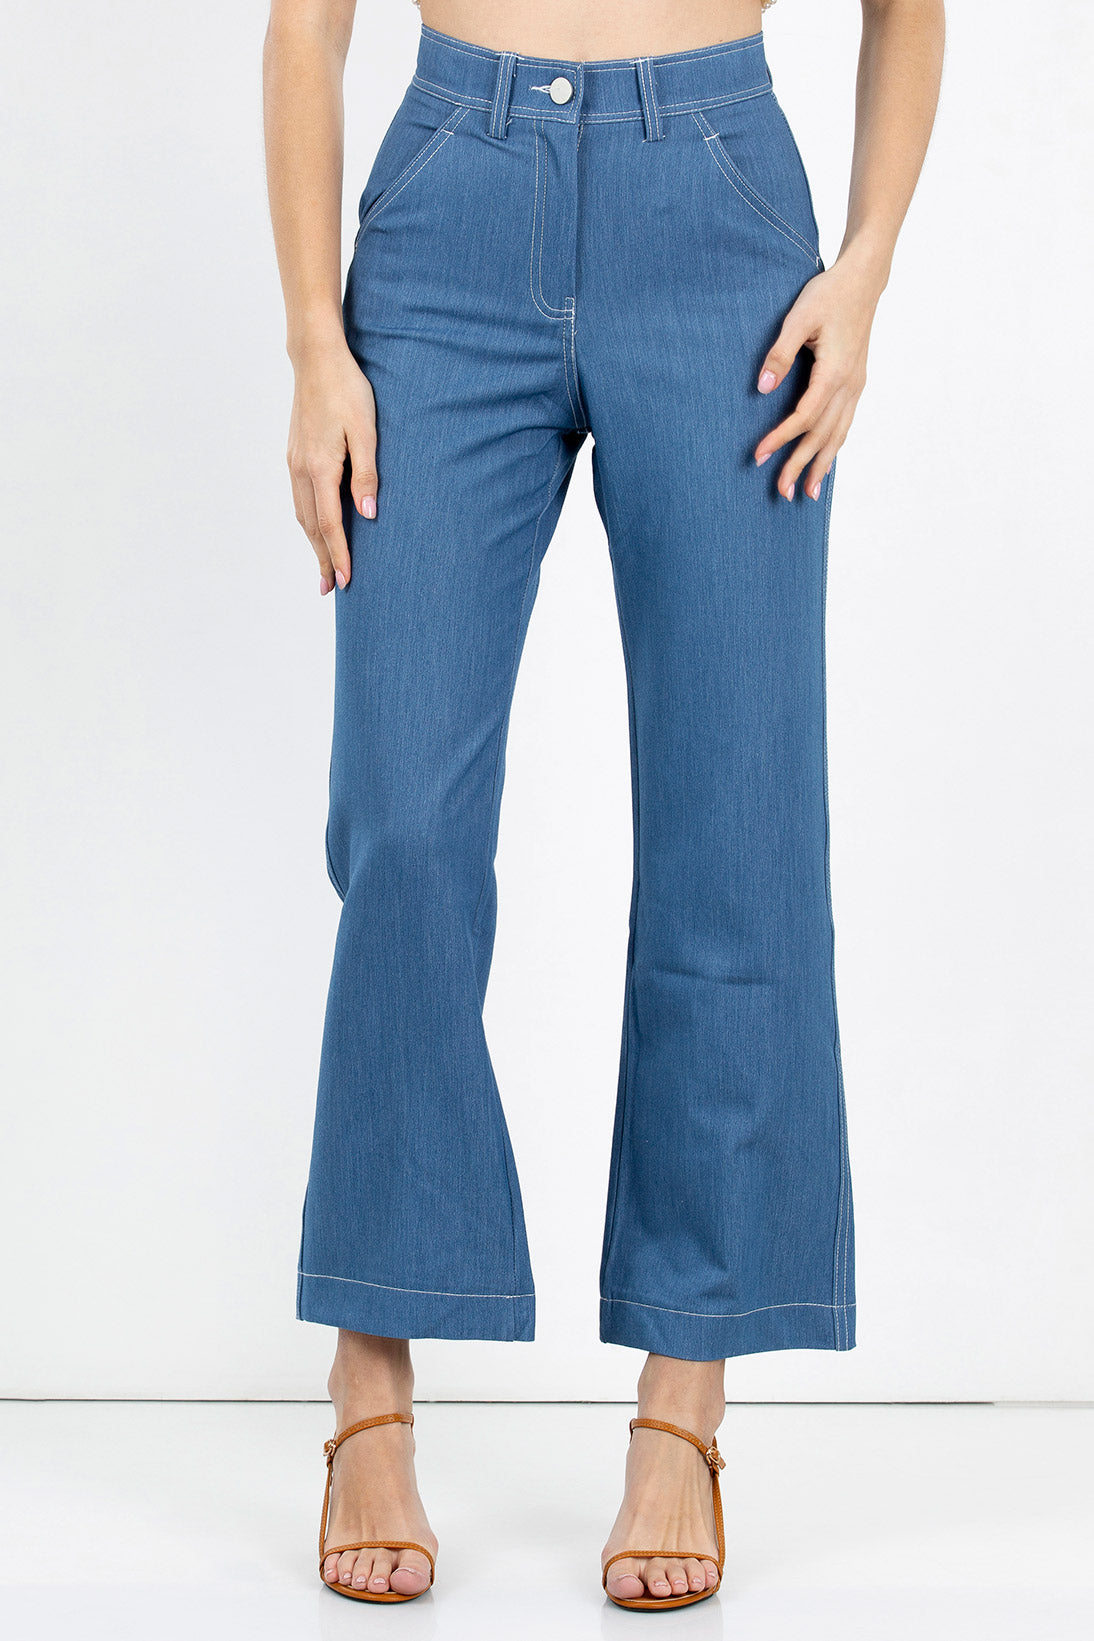 Kelso Jeans